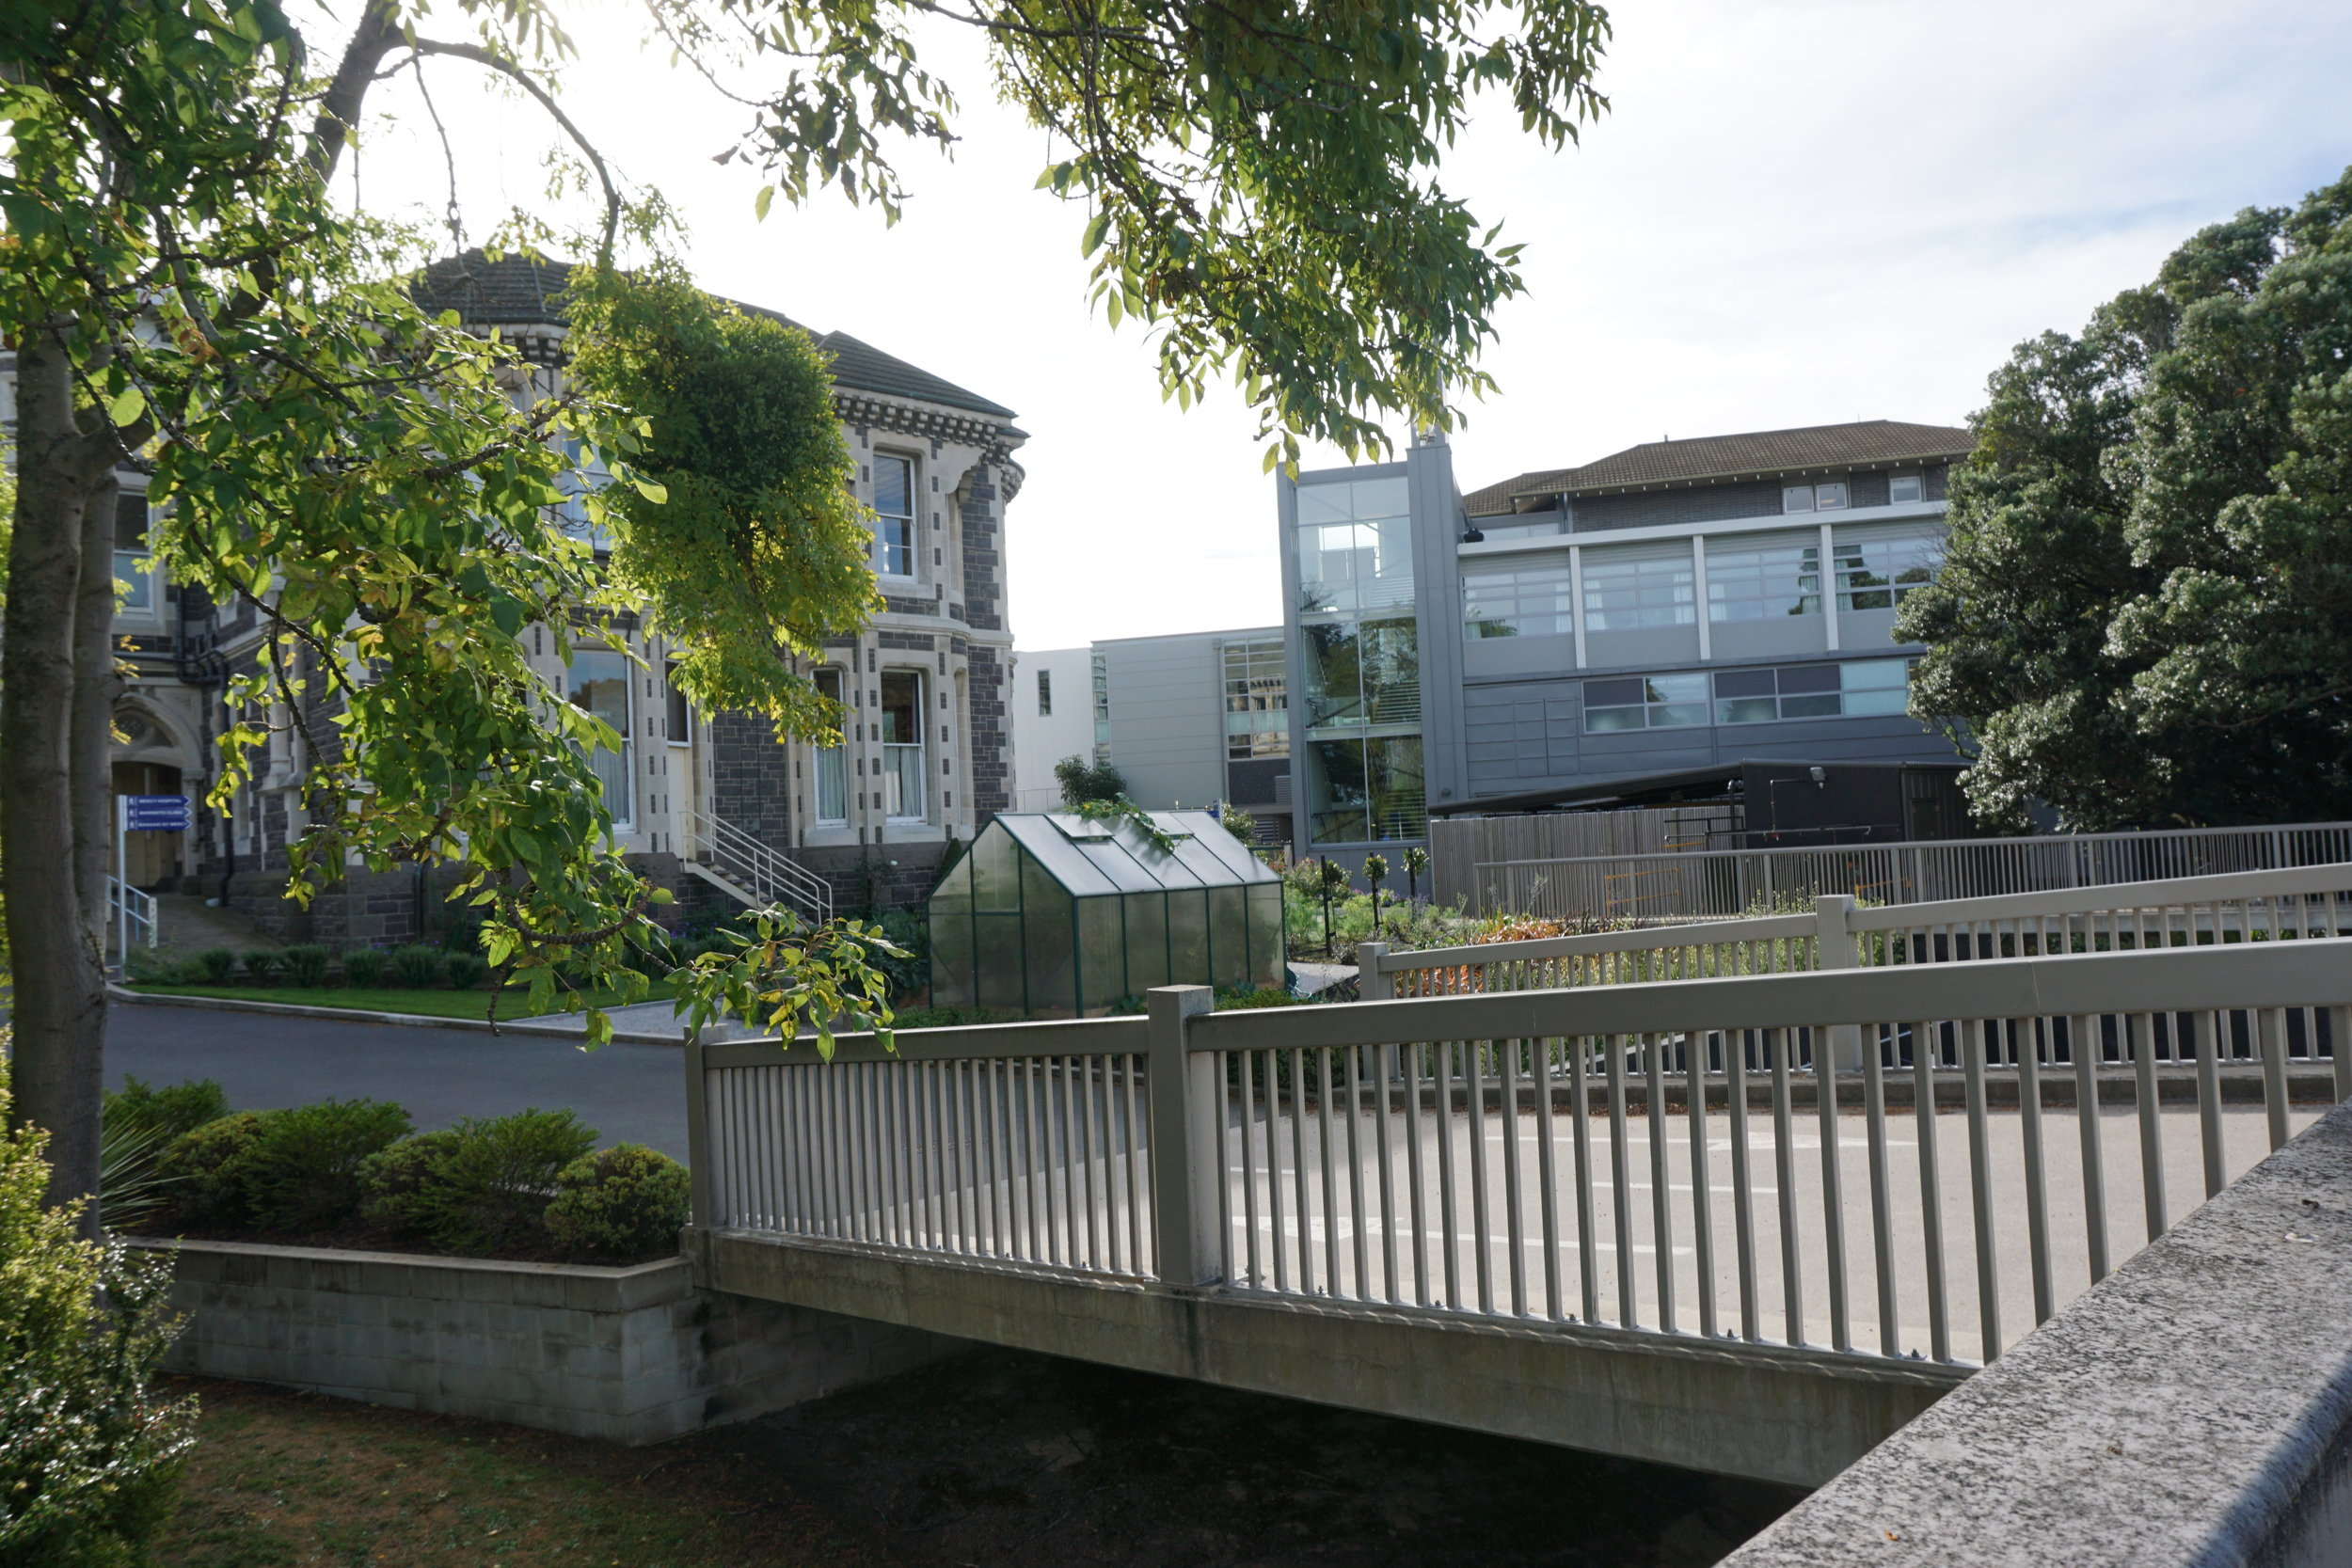 Mercy hospital, dunedin - The old and the new. MacLeod & Associates are at present involved in the implementation of the Board's master plan and have carried out major restructuring of the high and low voltage reticulation and various upgrades to the theatres.